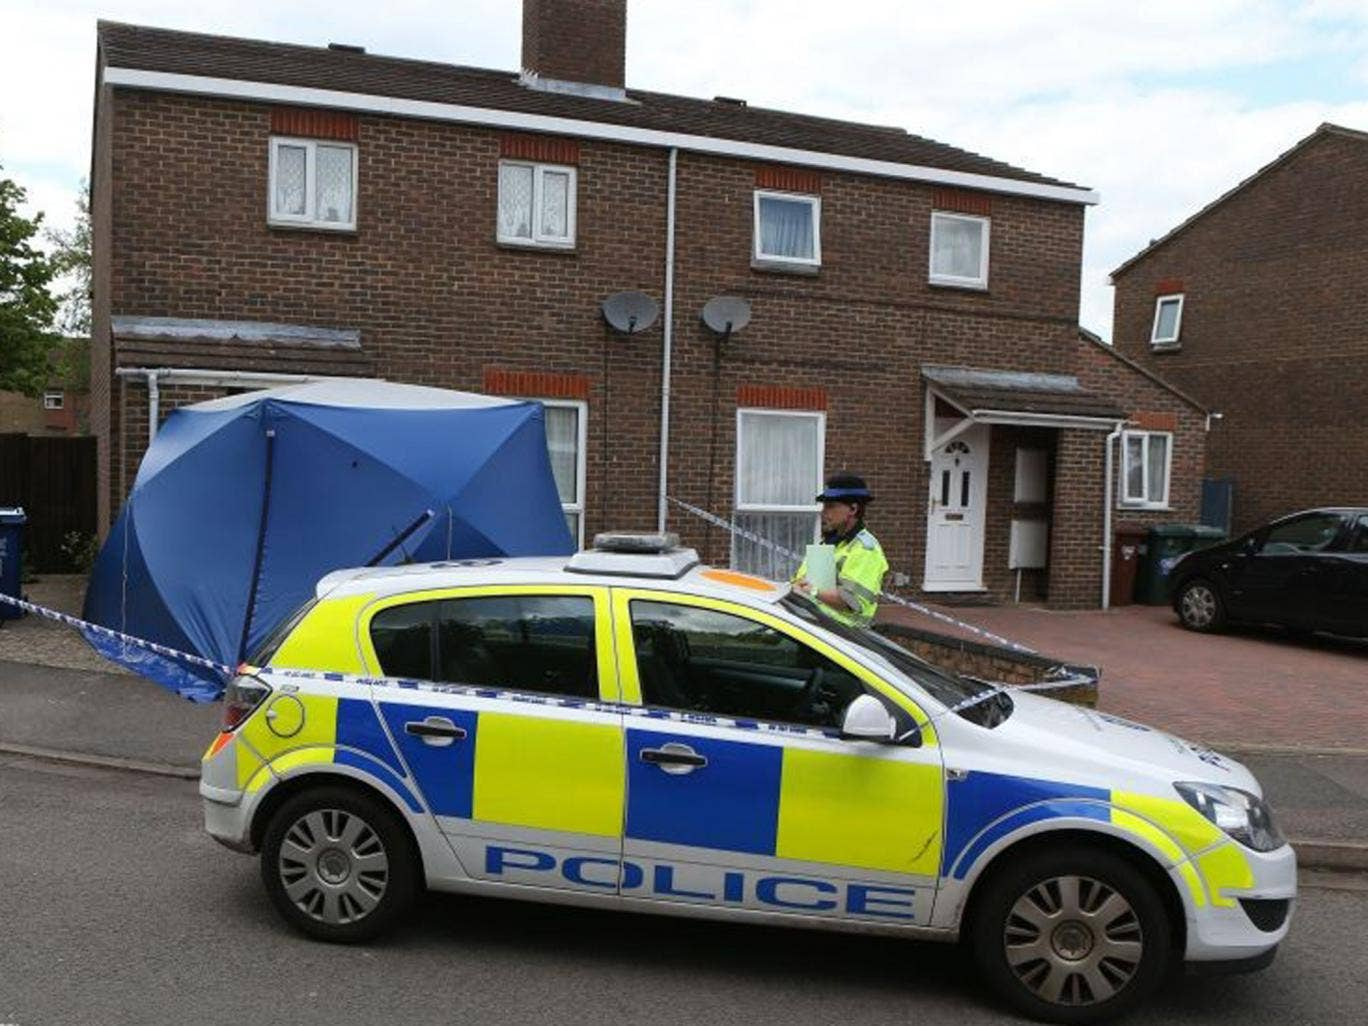 Police at the scene where the body of a two-year-old was found at a home after police were called to the address